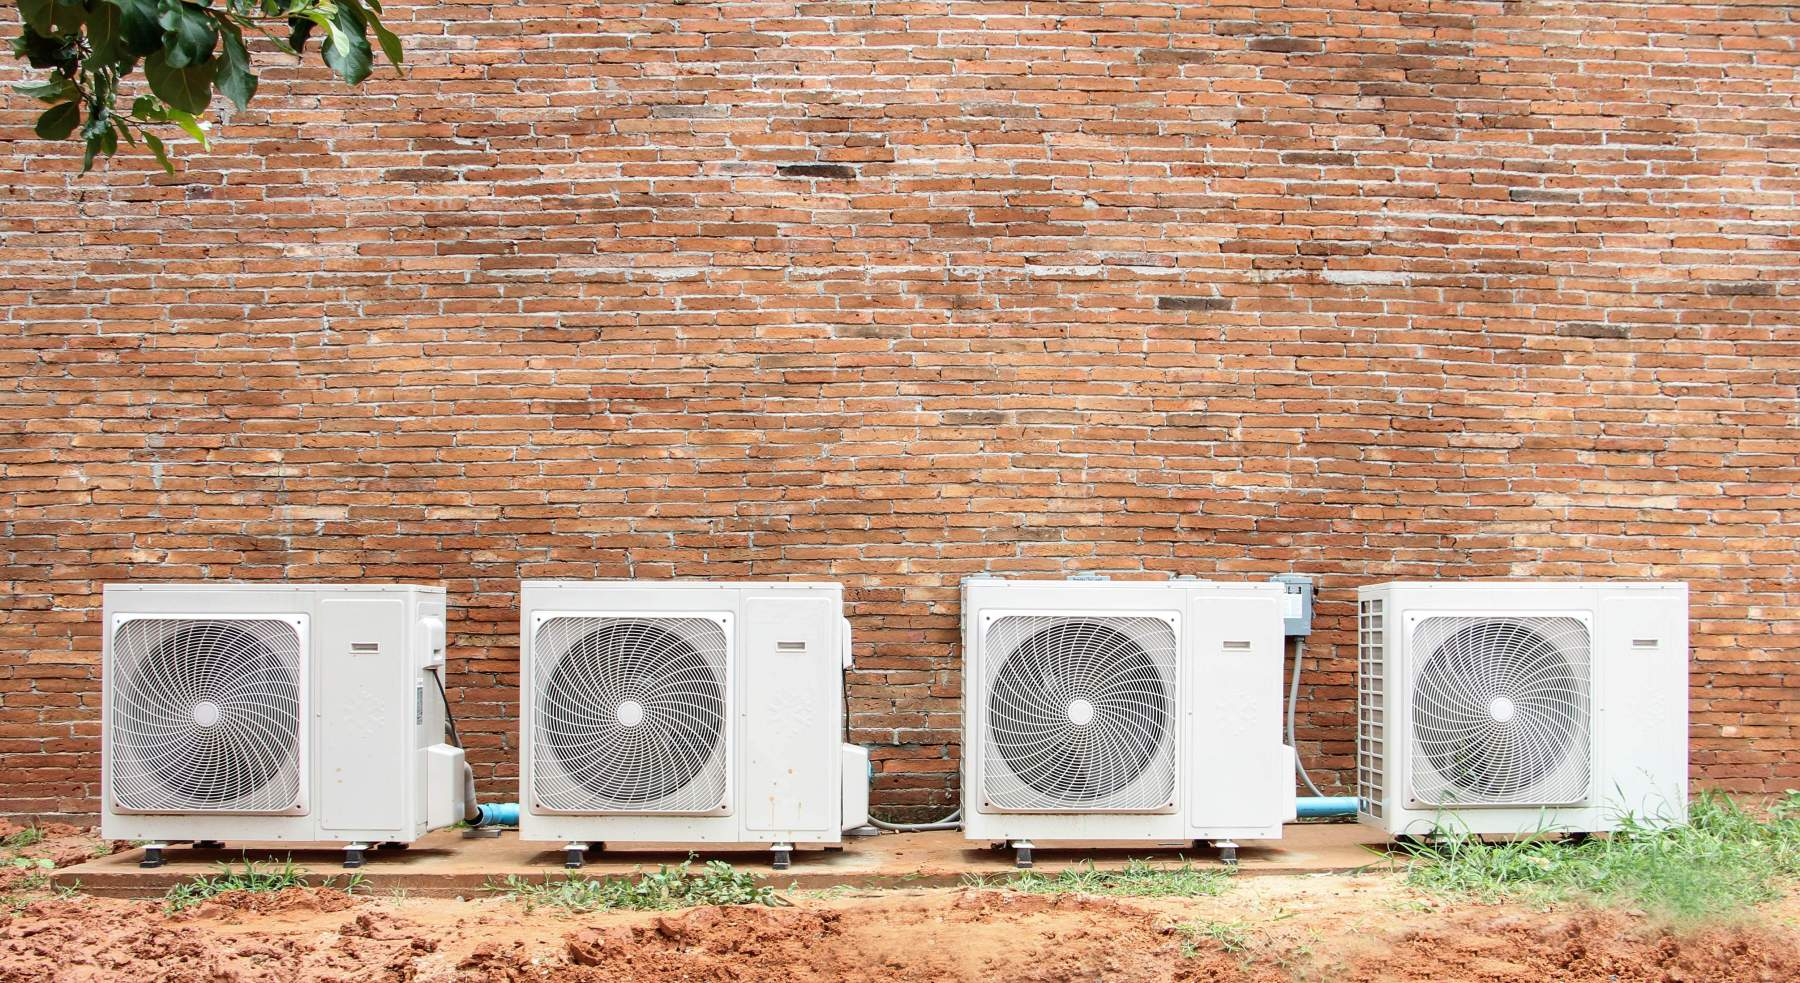 The Extinction of A/C Equipment Built Before 2010